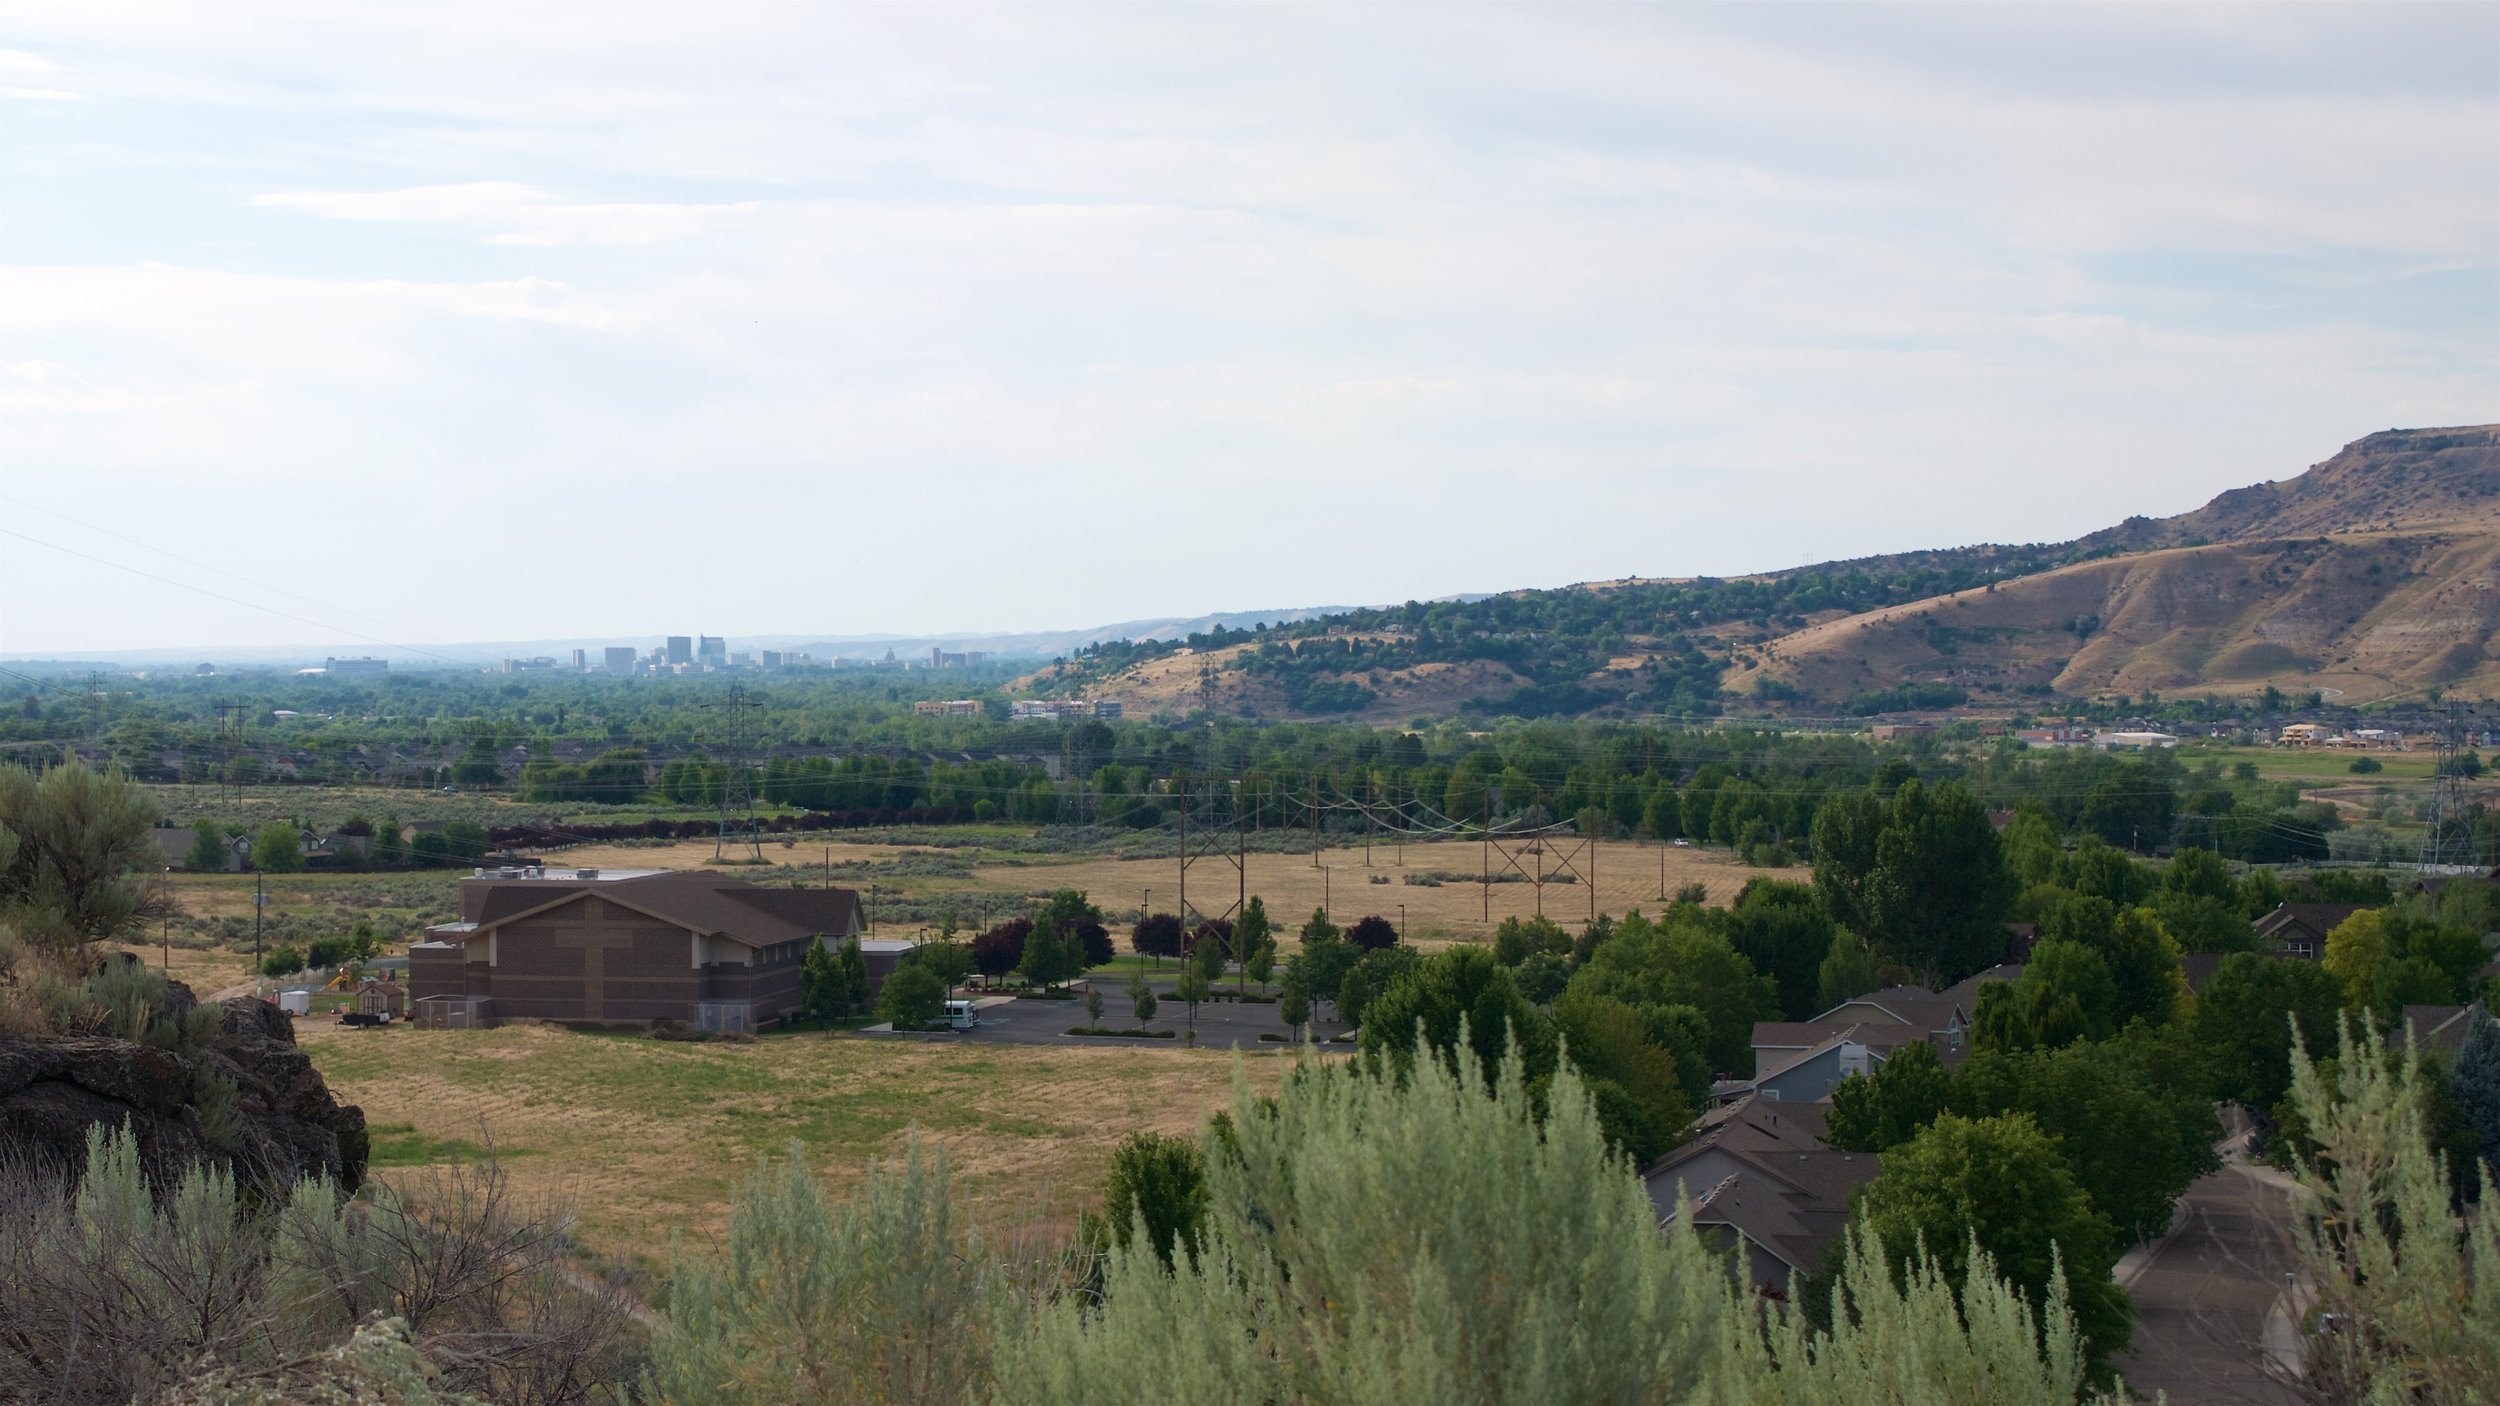 Looking towards downtown Boise from the Oregon Trail Reserve